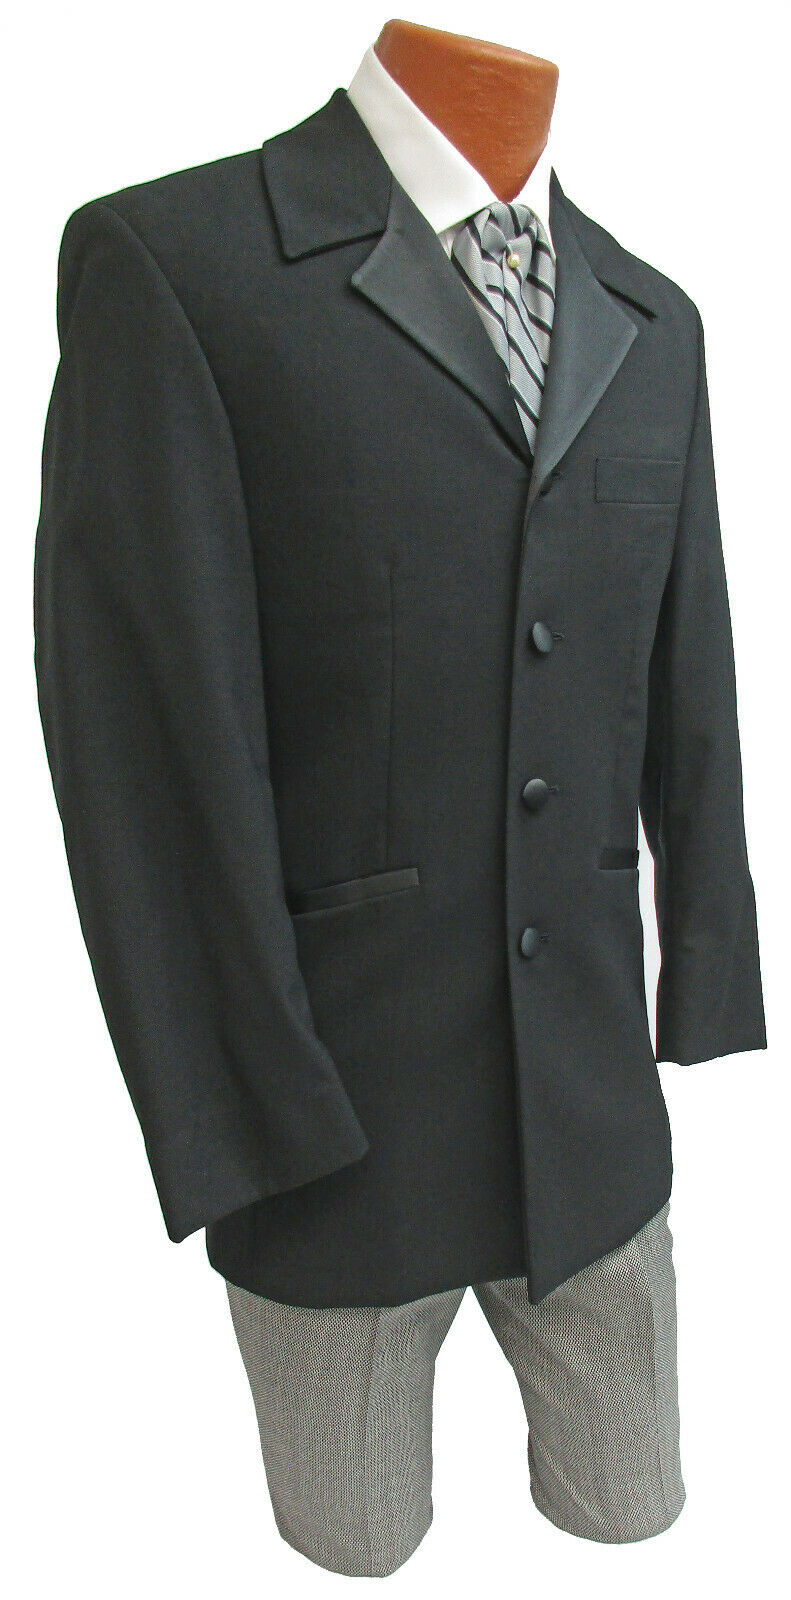 Black Tuxedo Jacket with Houndstooth Pants Steamp… - image 2